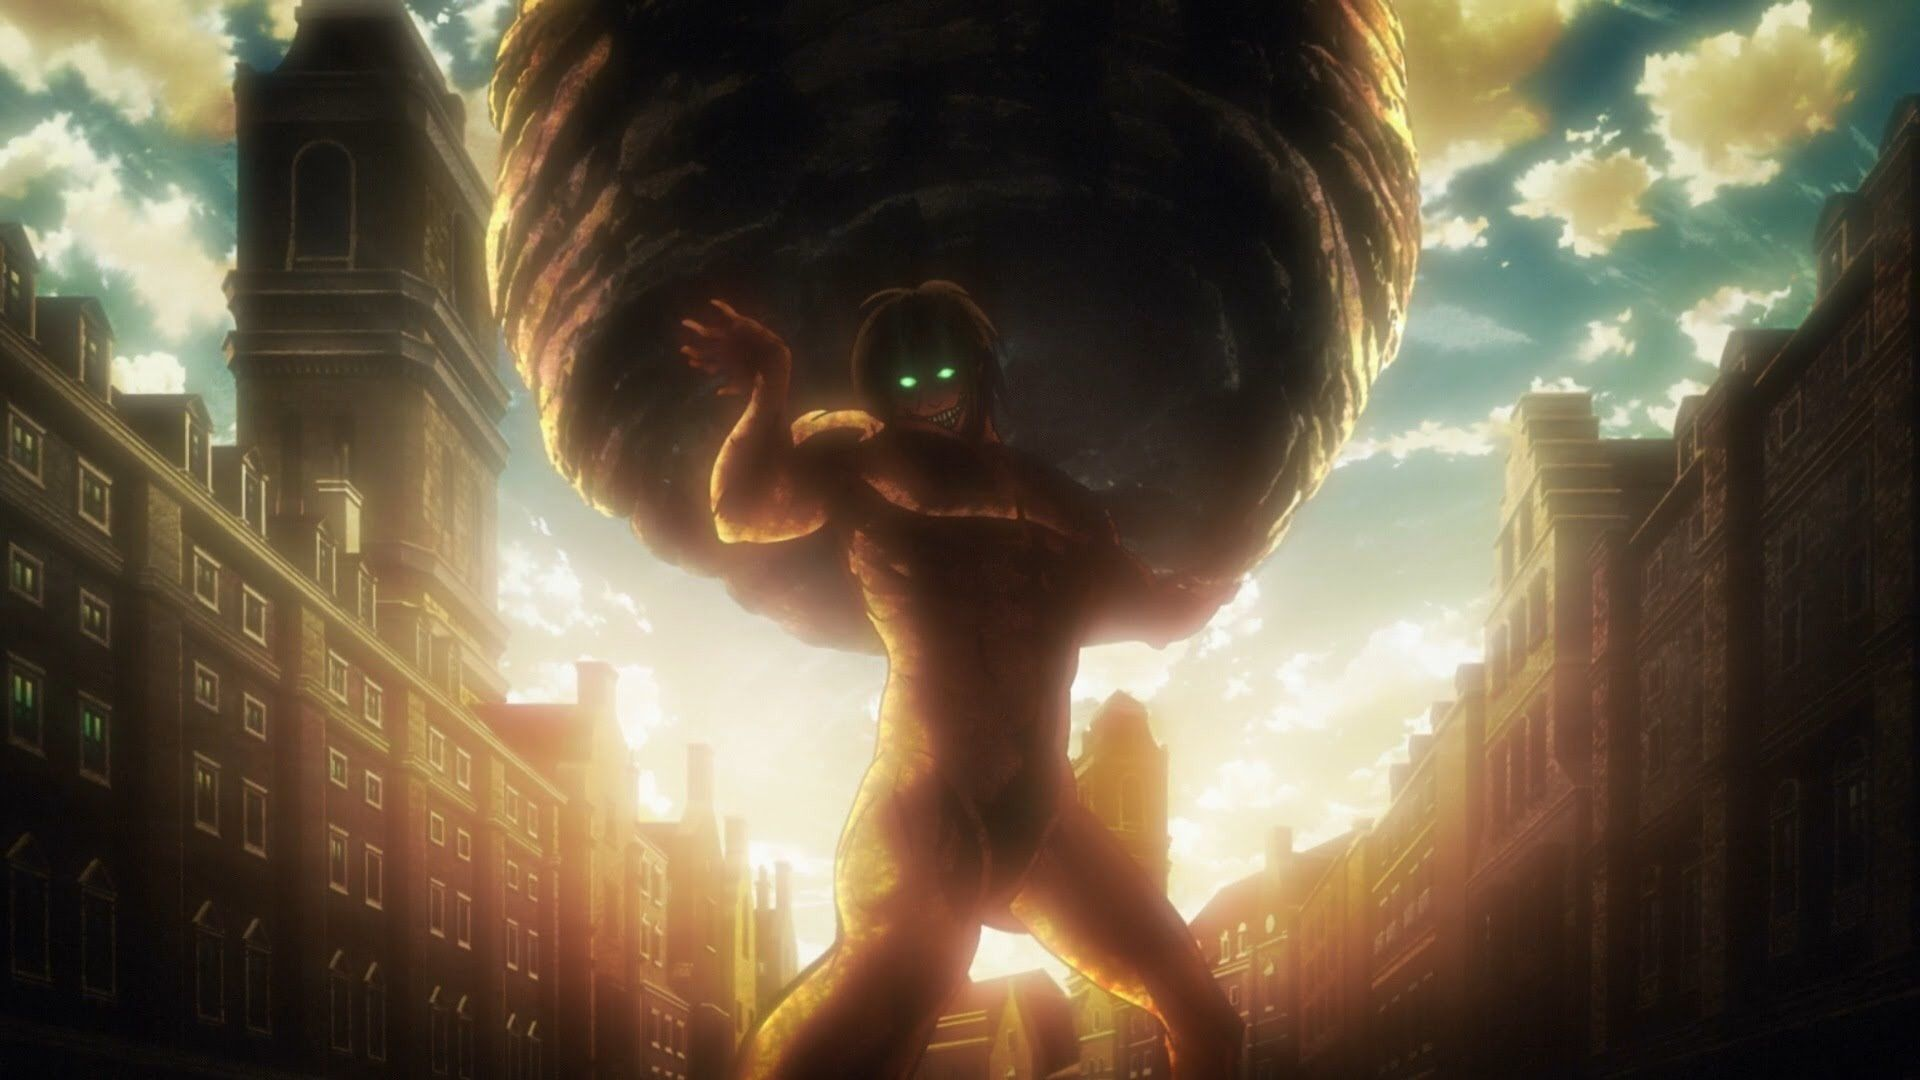 Attack On Titan Wallpaper 4k Desktop Elegant Hd Wallpaper Anime Attack Titan Eren Yeager Of A In 2020 Attack On Titan Eren Attack On Titan English Attack On Titan